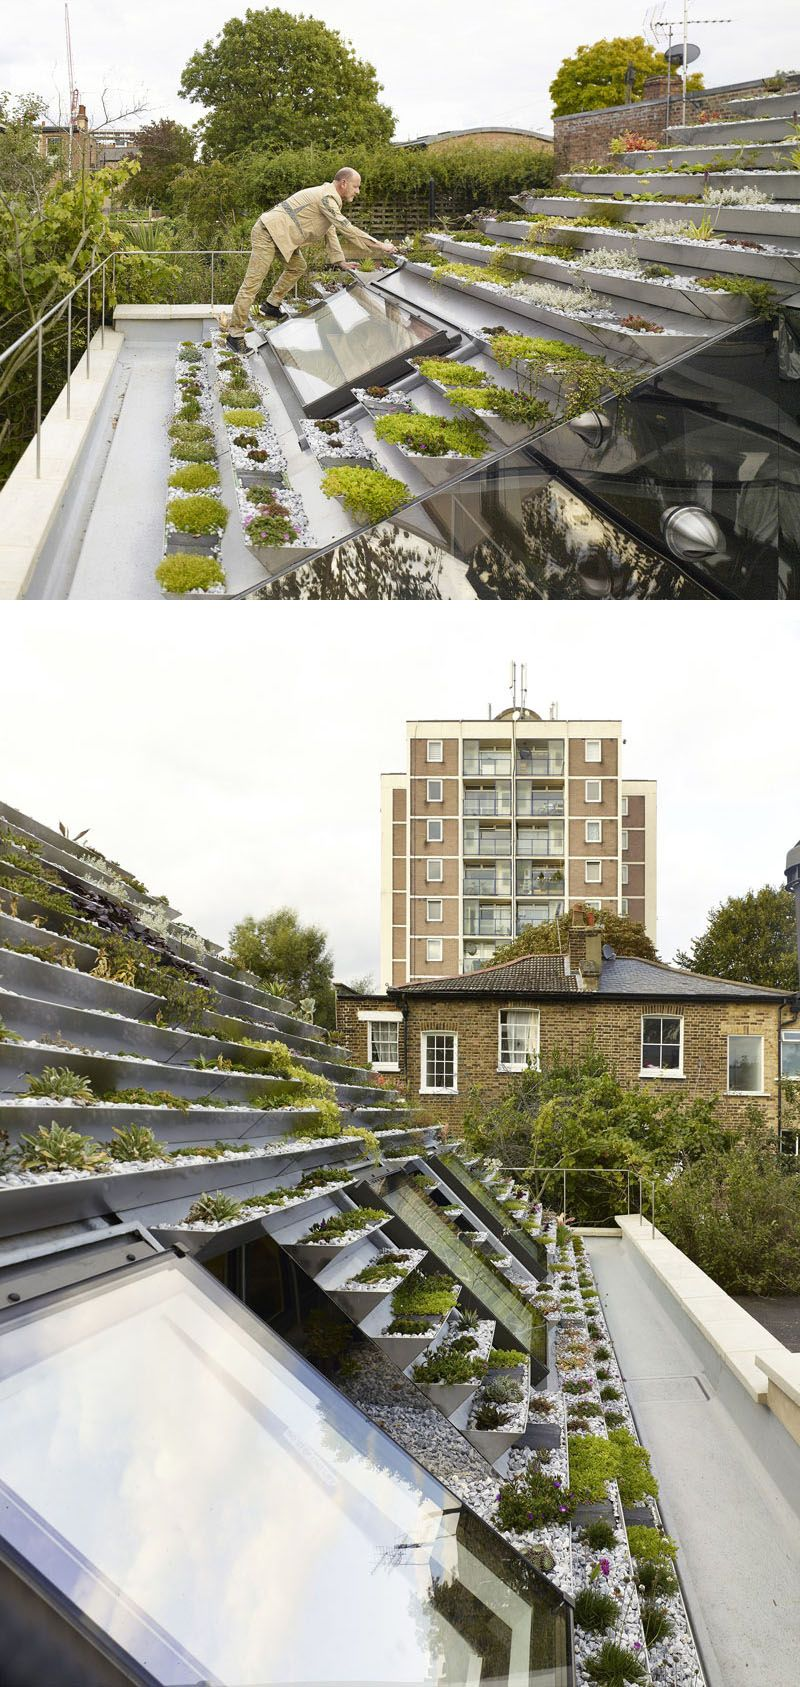 This Green Roof On A Home In London, Has A Series Of Terraced Stainless  Steel